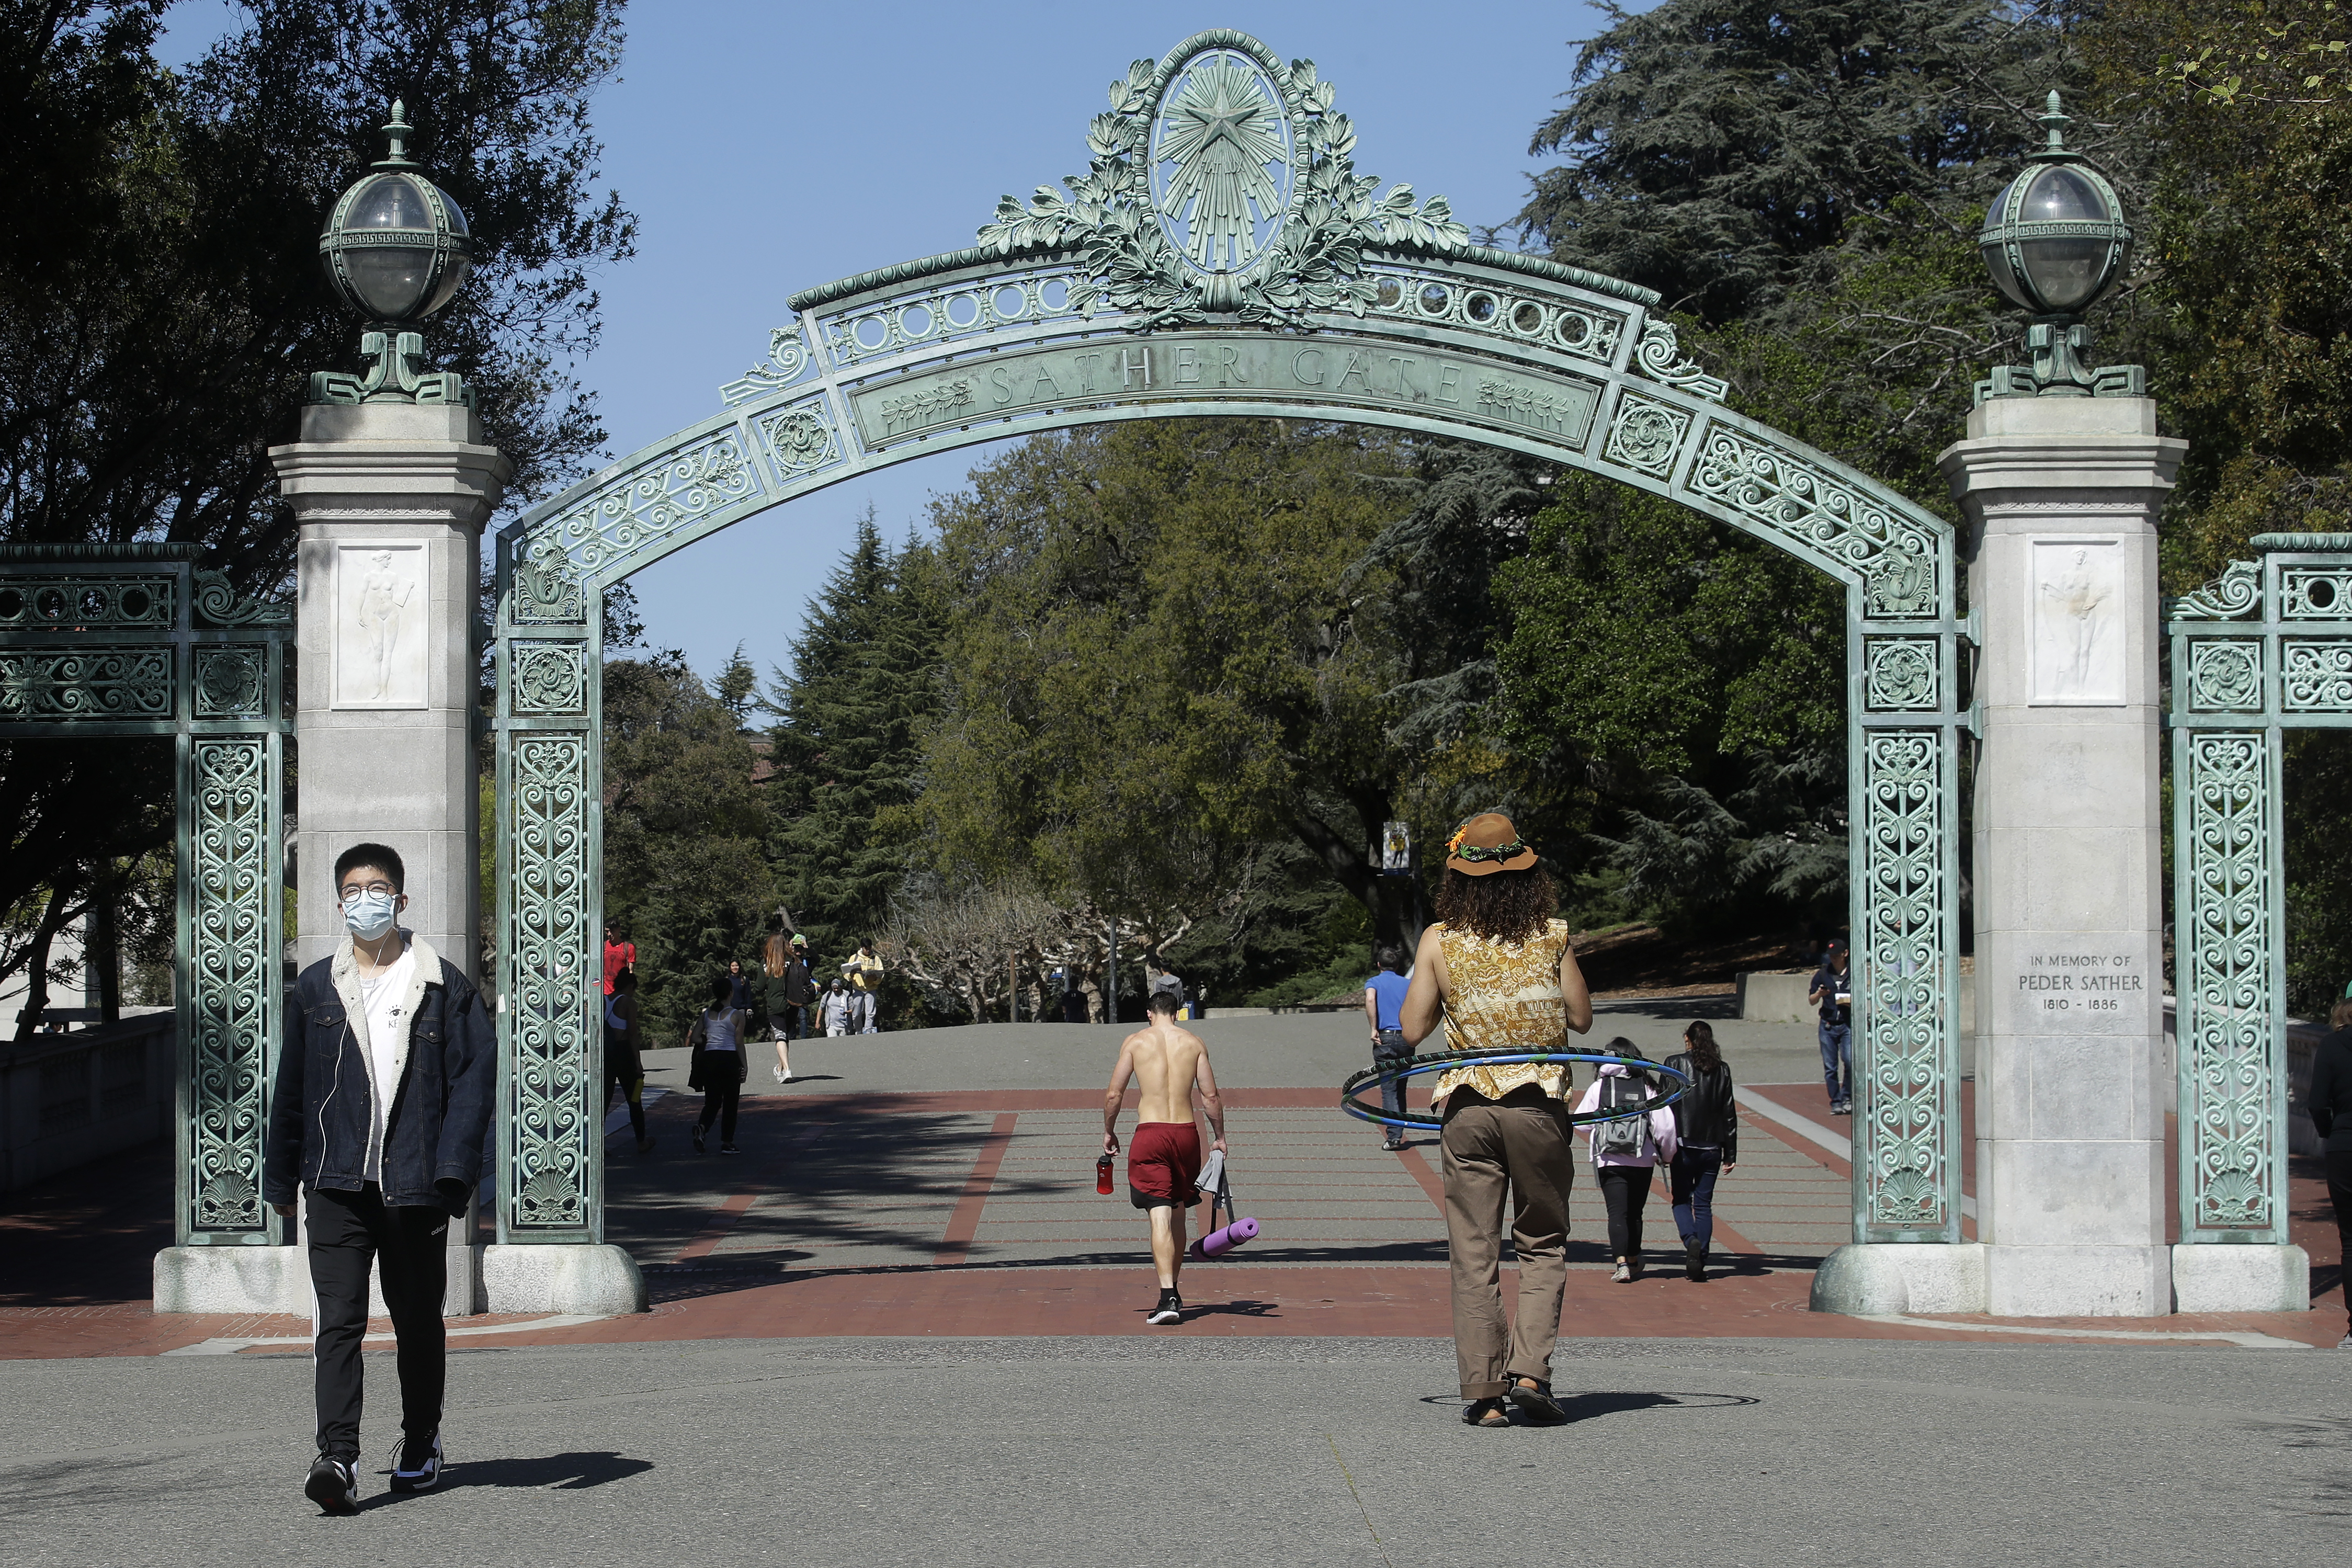 A man wears a mask while walking past Sather Gate on the University of California at Berkeley campus in Berkeley, Calif., Wednesday, March 11, 2020. (AP Photo/Jeff Chiu)